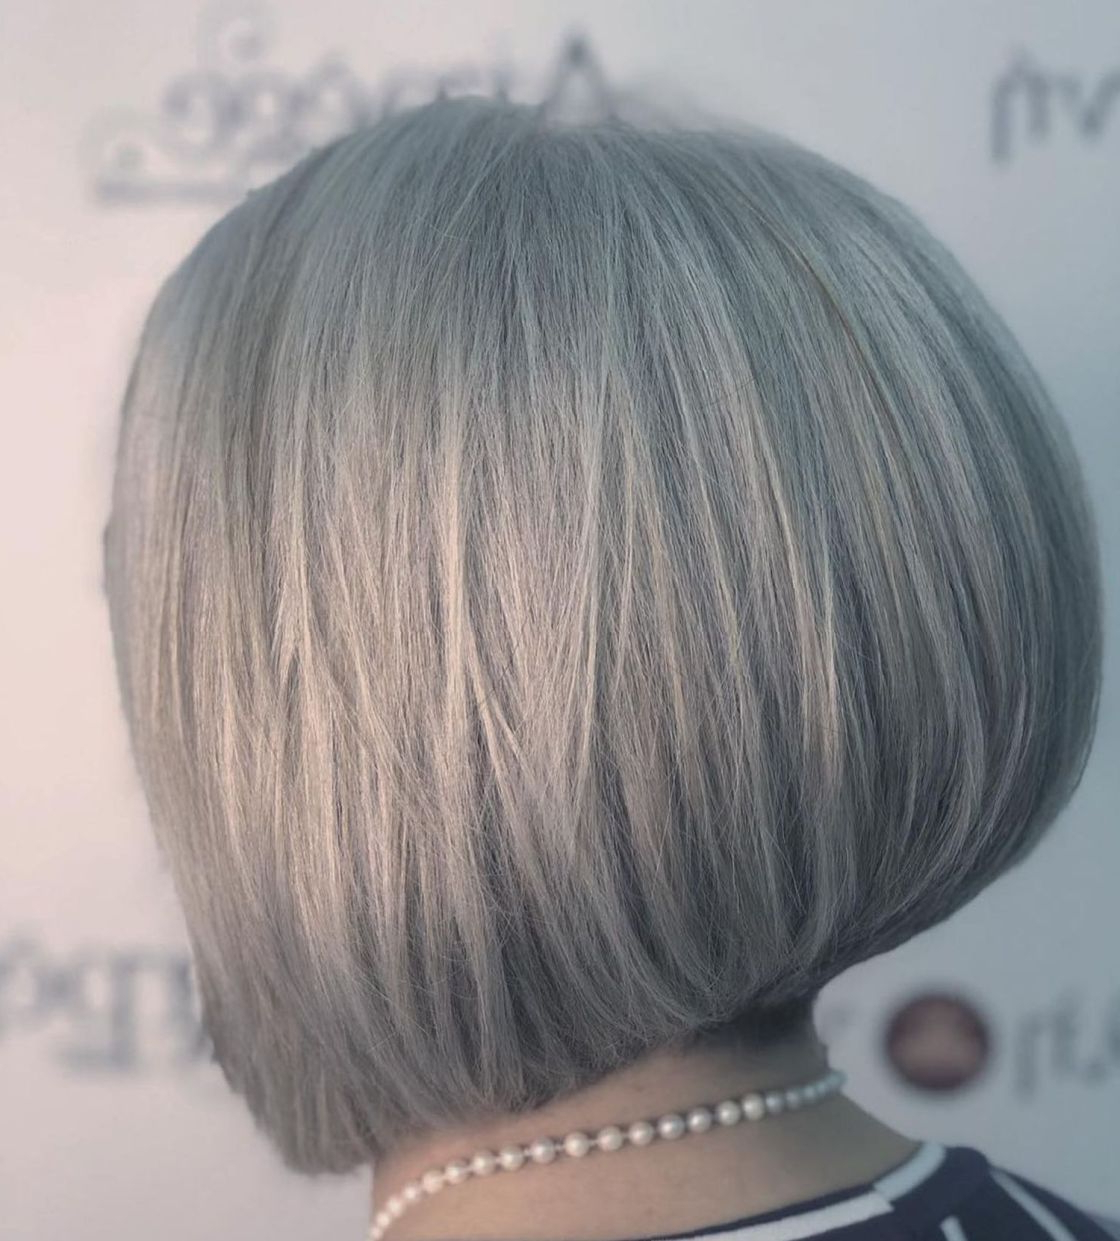 60 Gorgeous Gray Hair Styles In 2018 | Hair | Pinterest | Hair For Gray Bob Hairstyles With Delicate Layers (View 9 of 20)